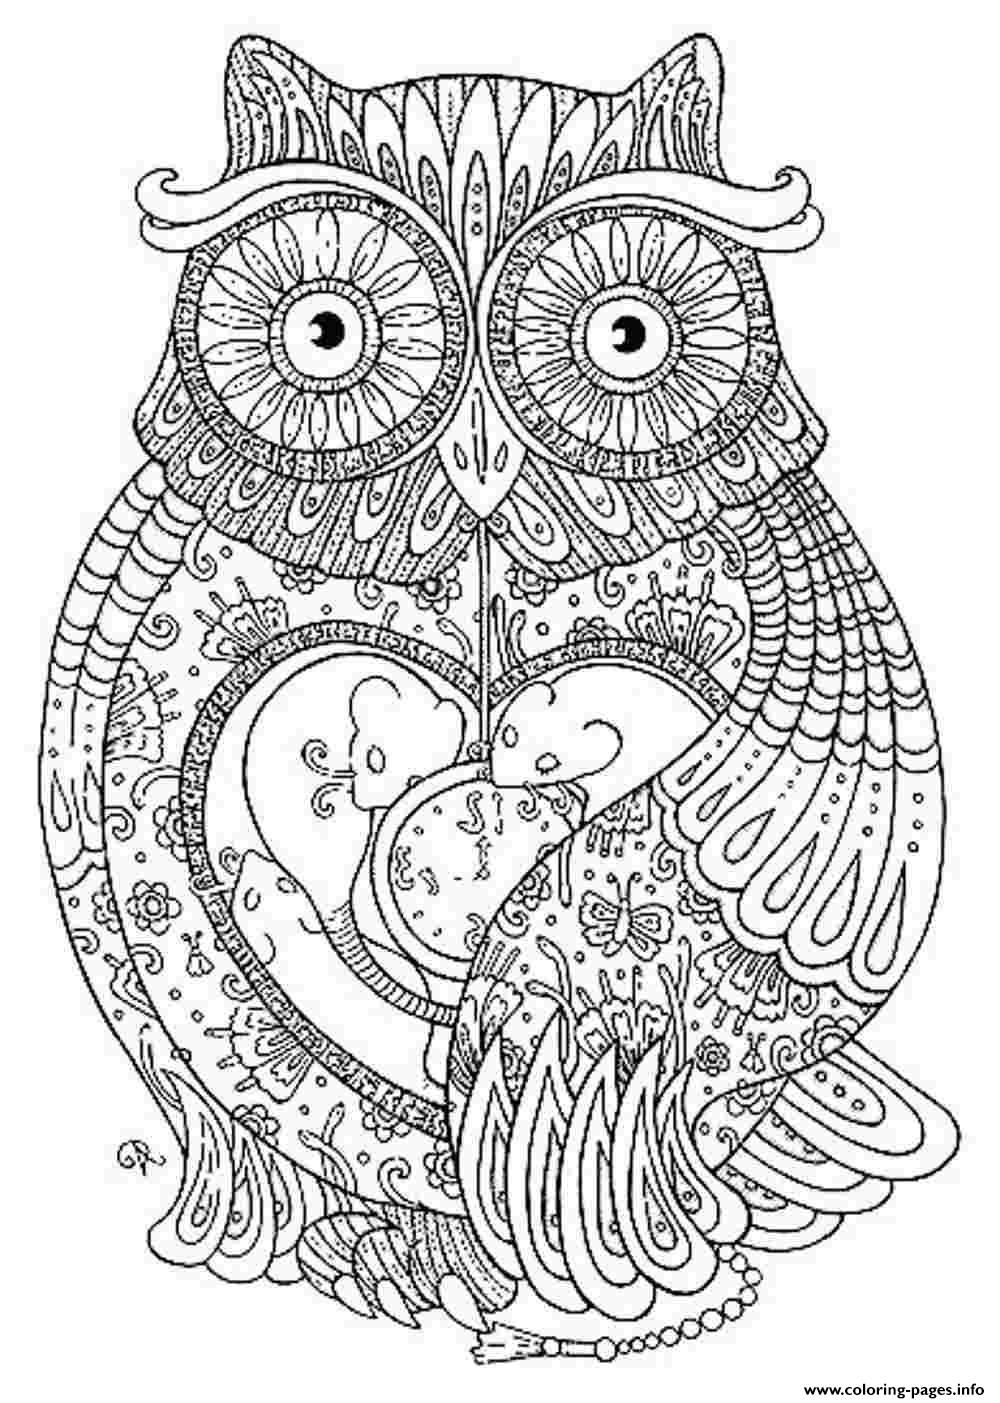 Animal For Adults - Coloring Pages for Kids and for Adults